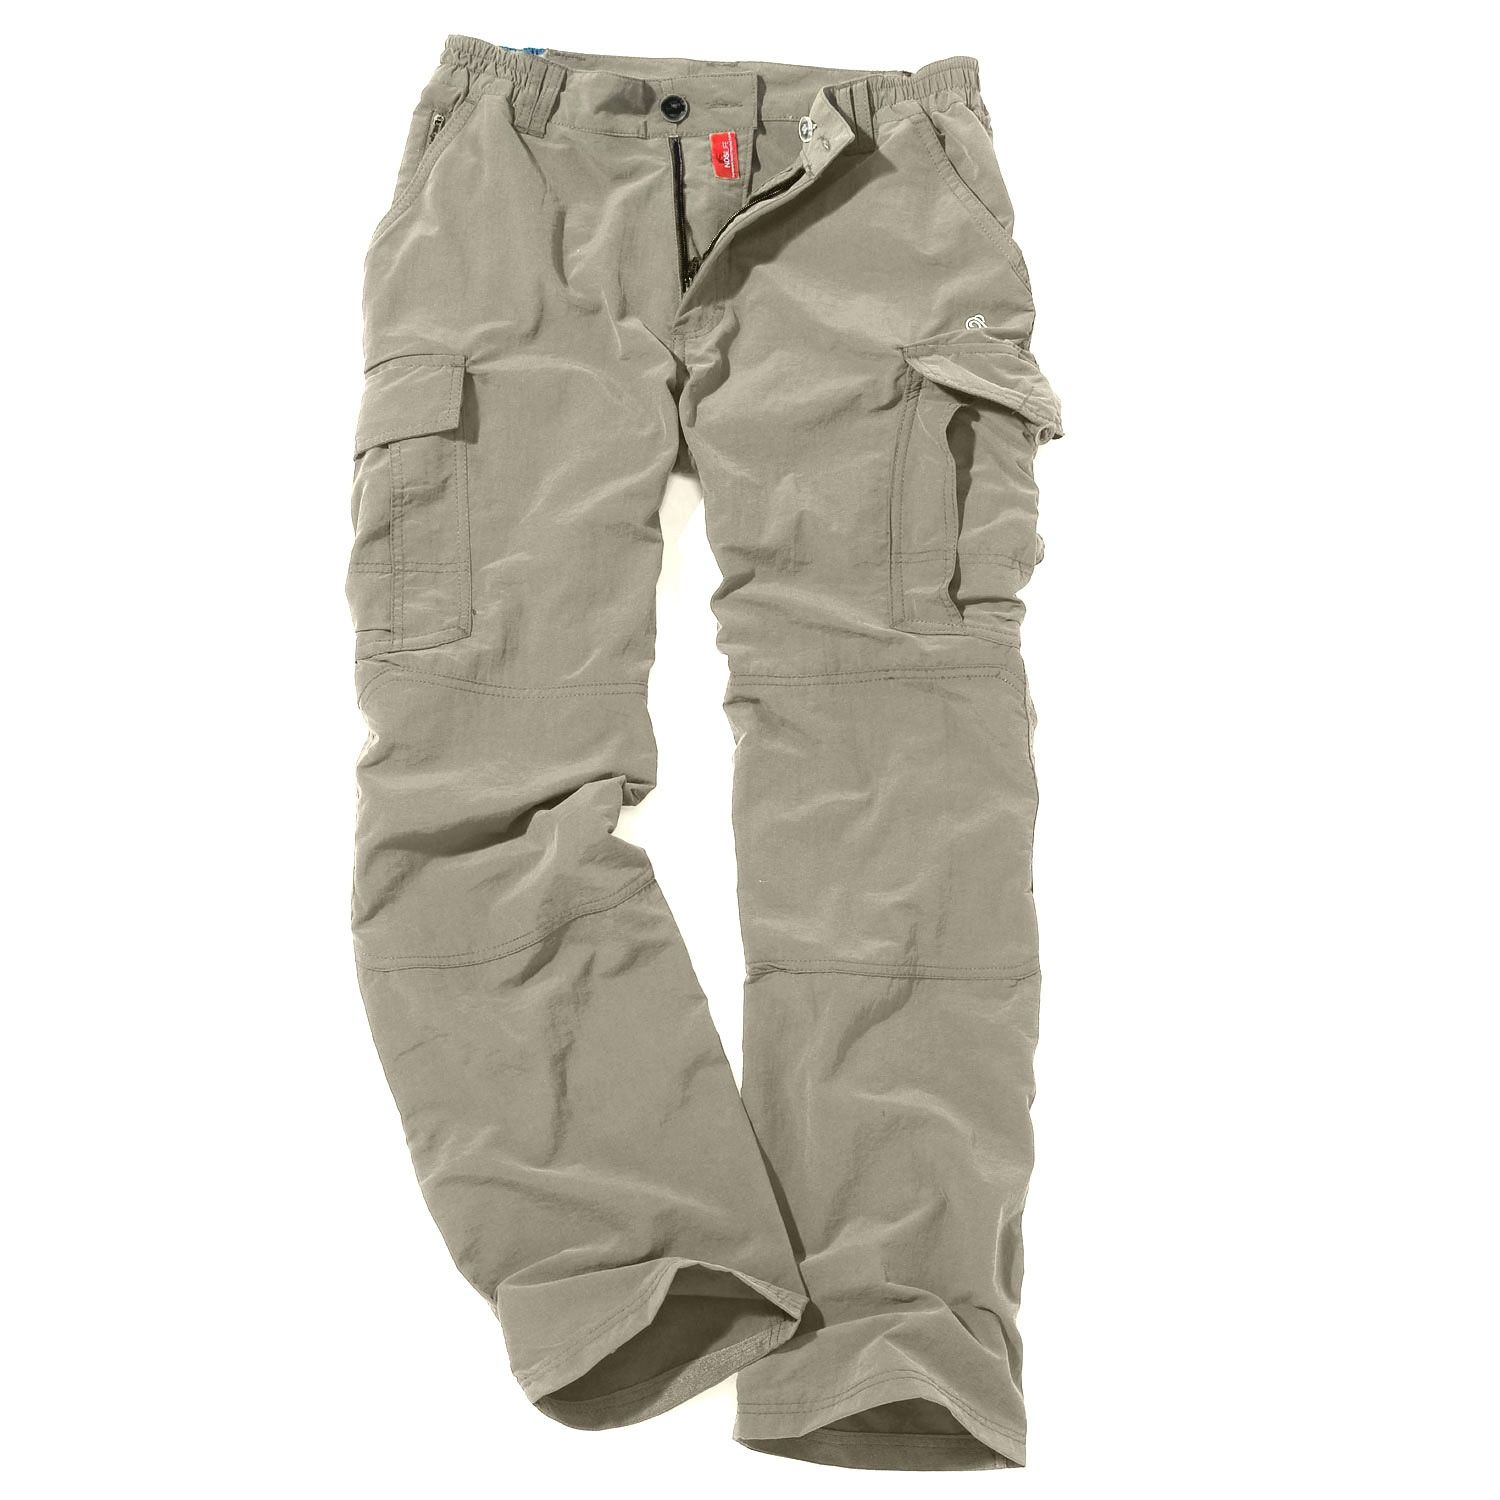 Shop Target for Cargo Pants you will love at great low prices. Spend $35+ or use your REDcard & get free 2-day shipping on most items or same-day pick-up in store.